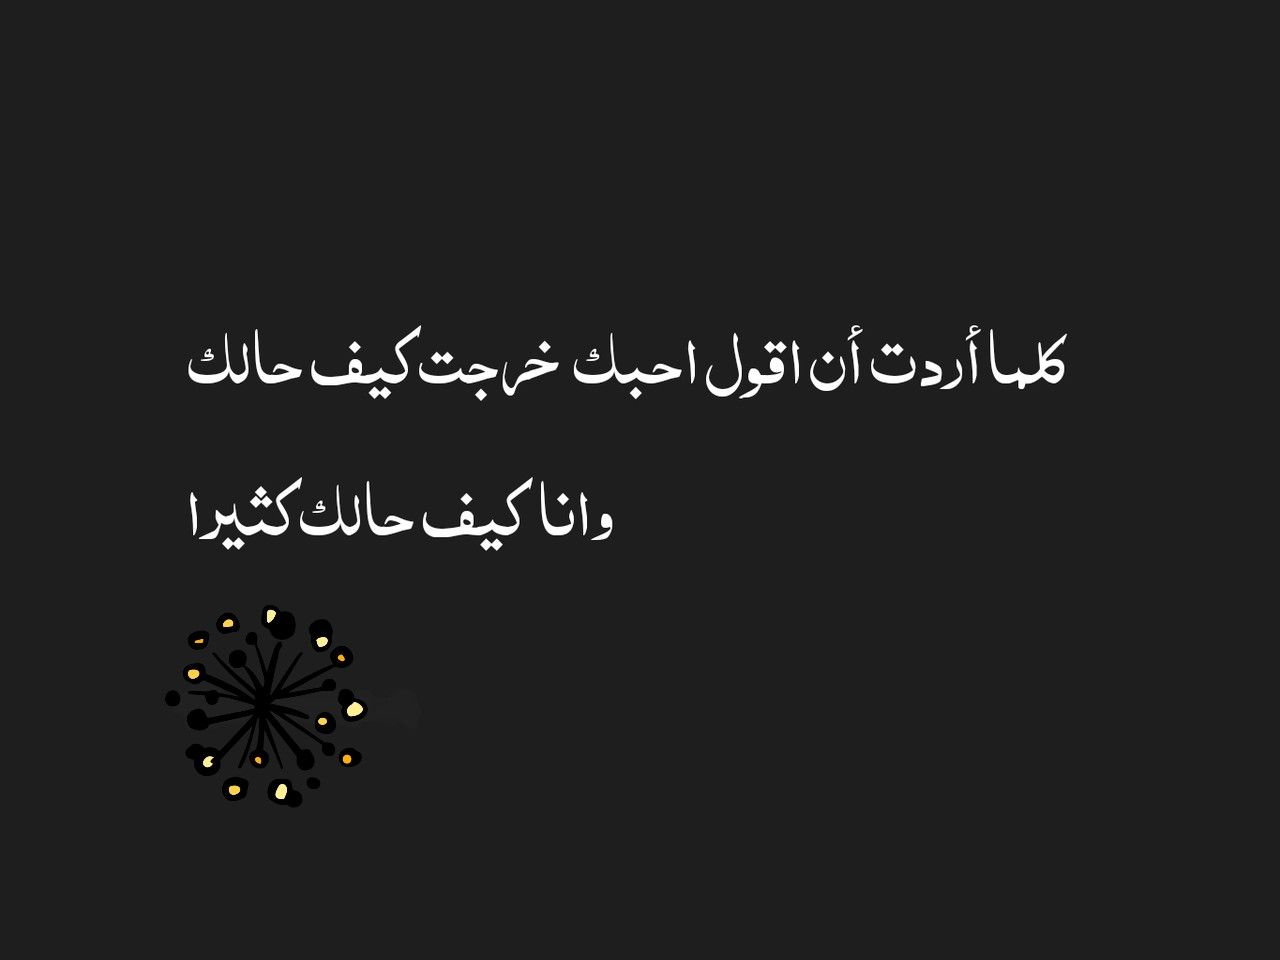 Pin By Ameen Alkinani On Alkinani Words Quotes Love Quotes Words